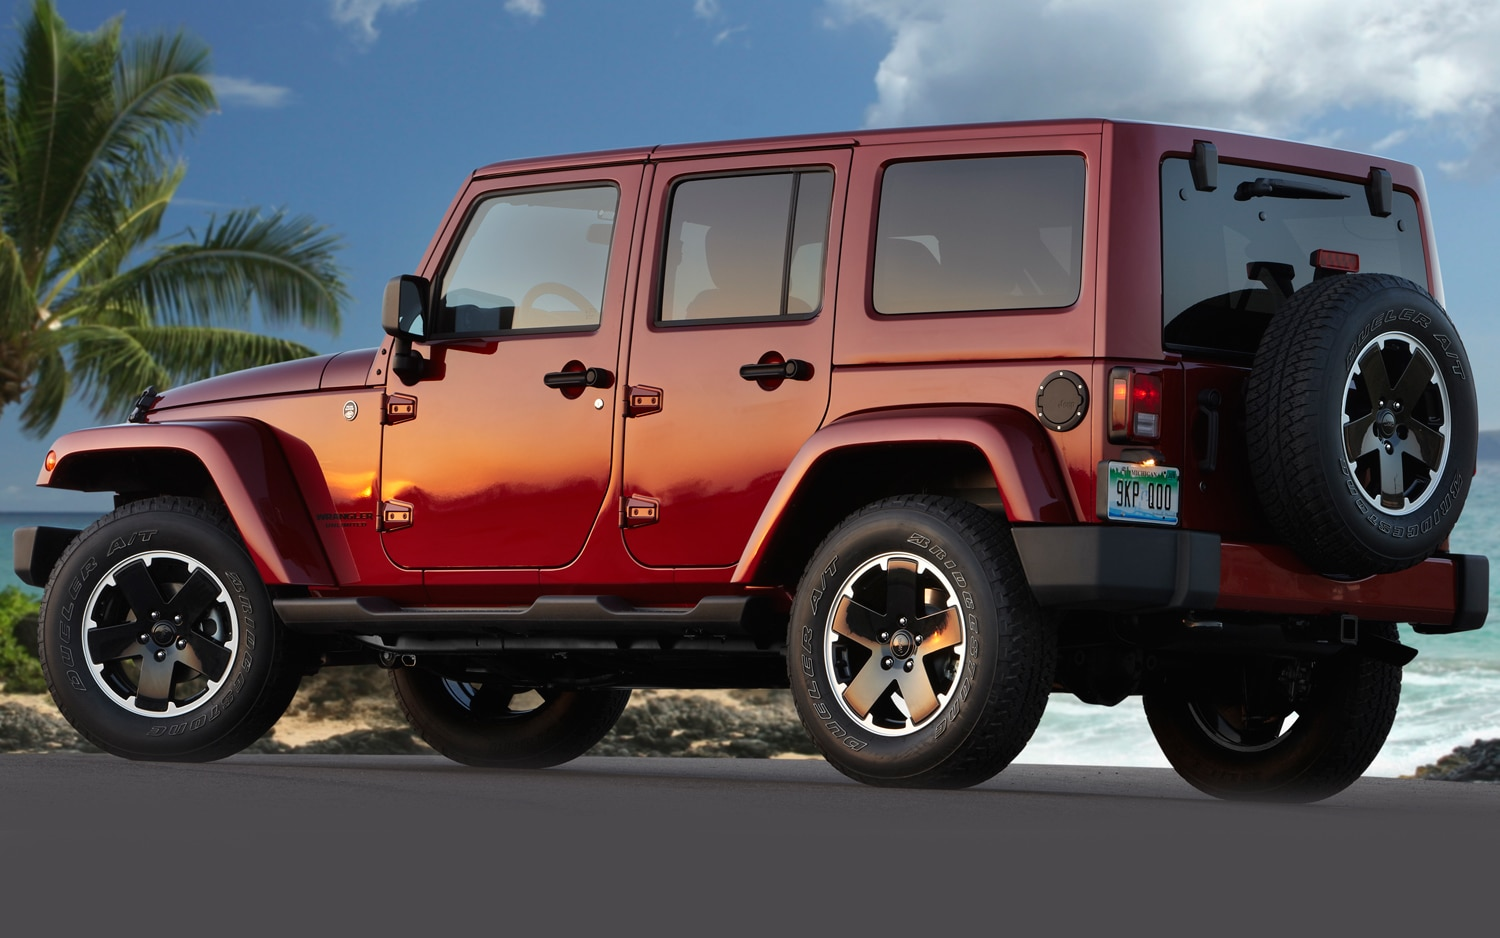 2012 Jeep Wrangler Unlimited Altitude Edition